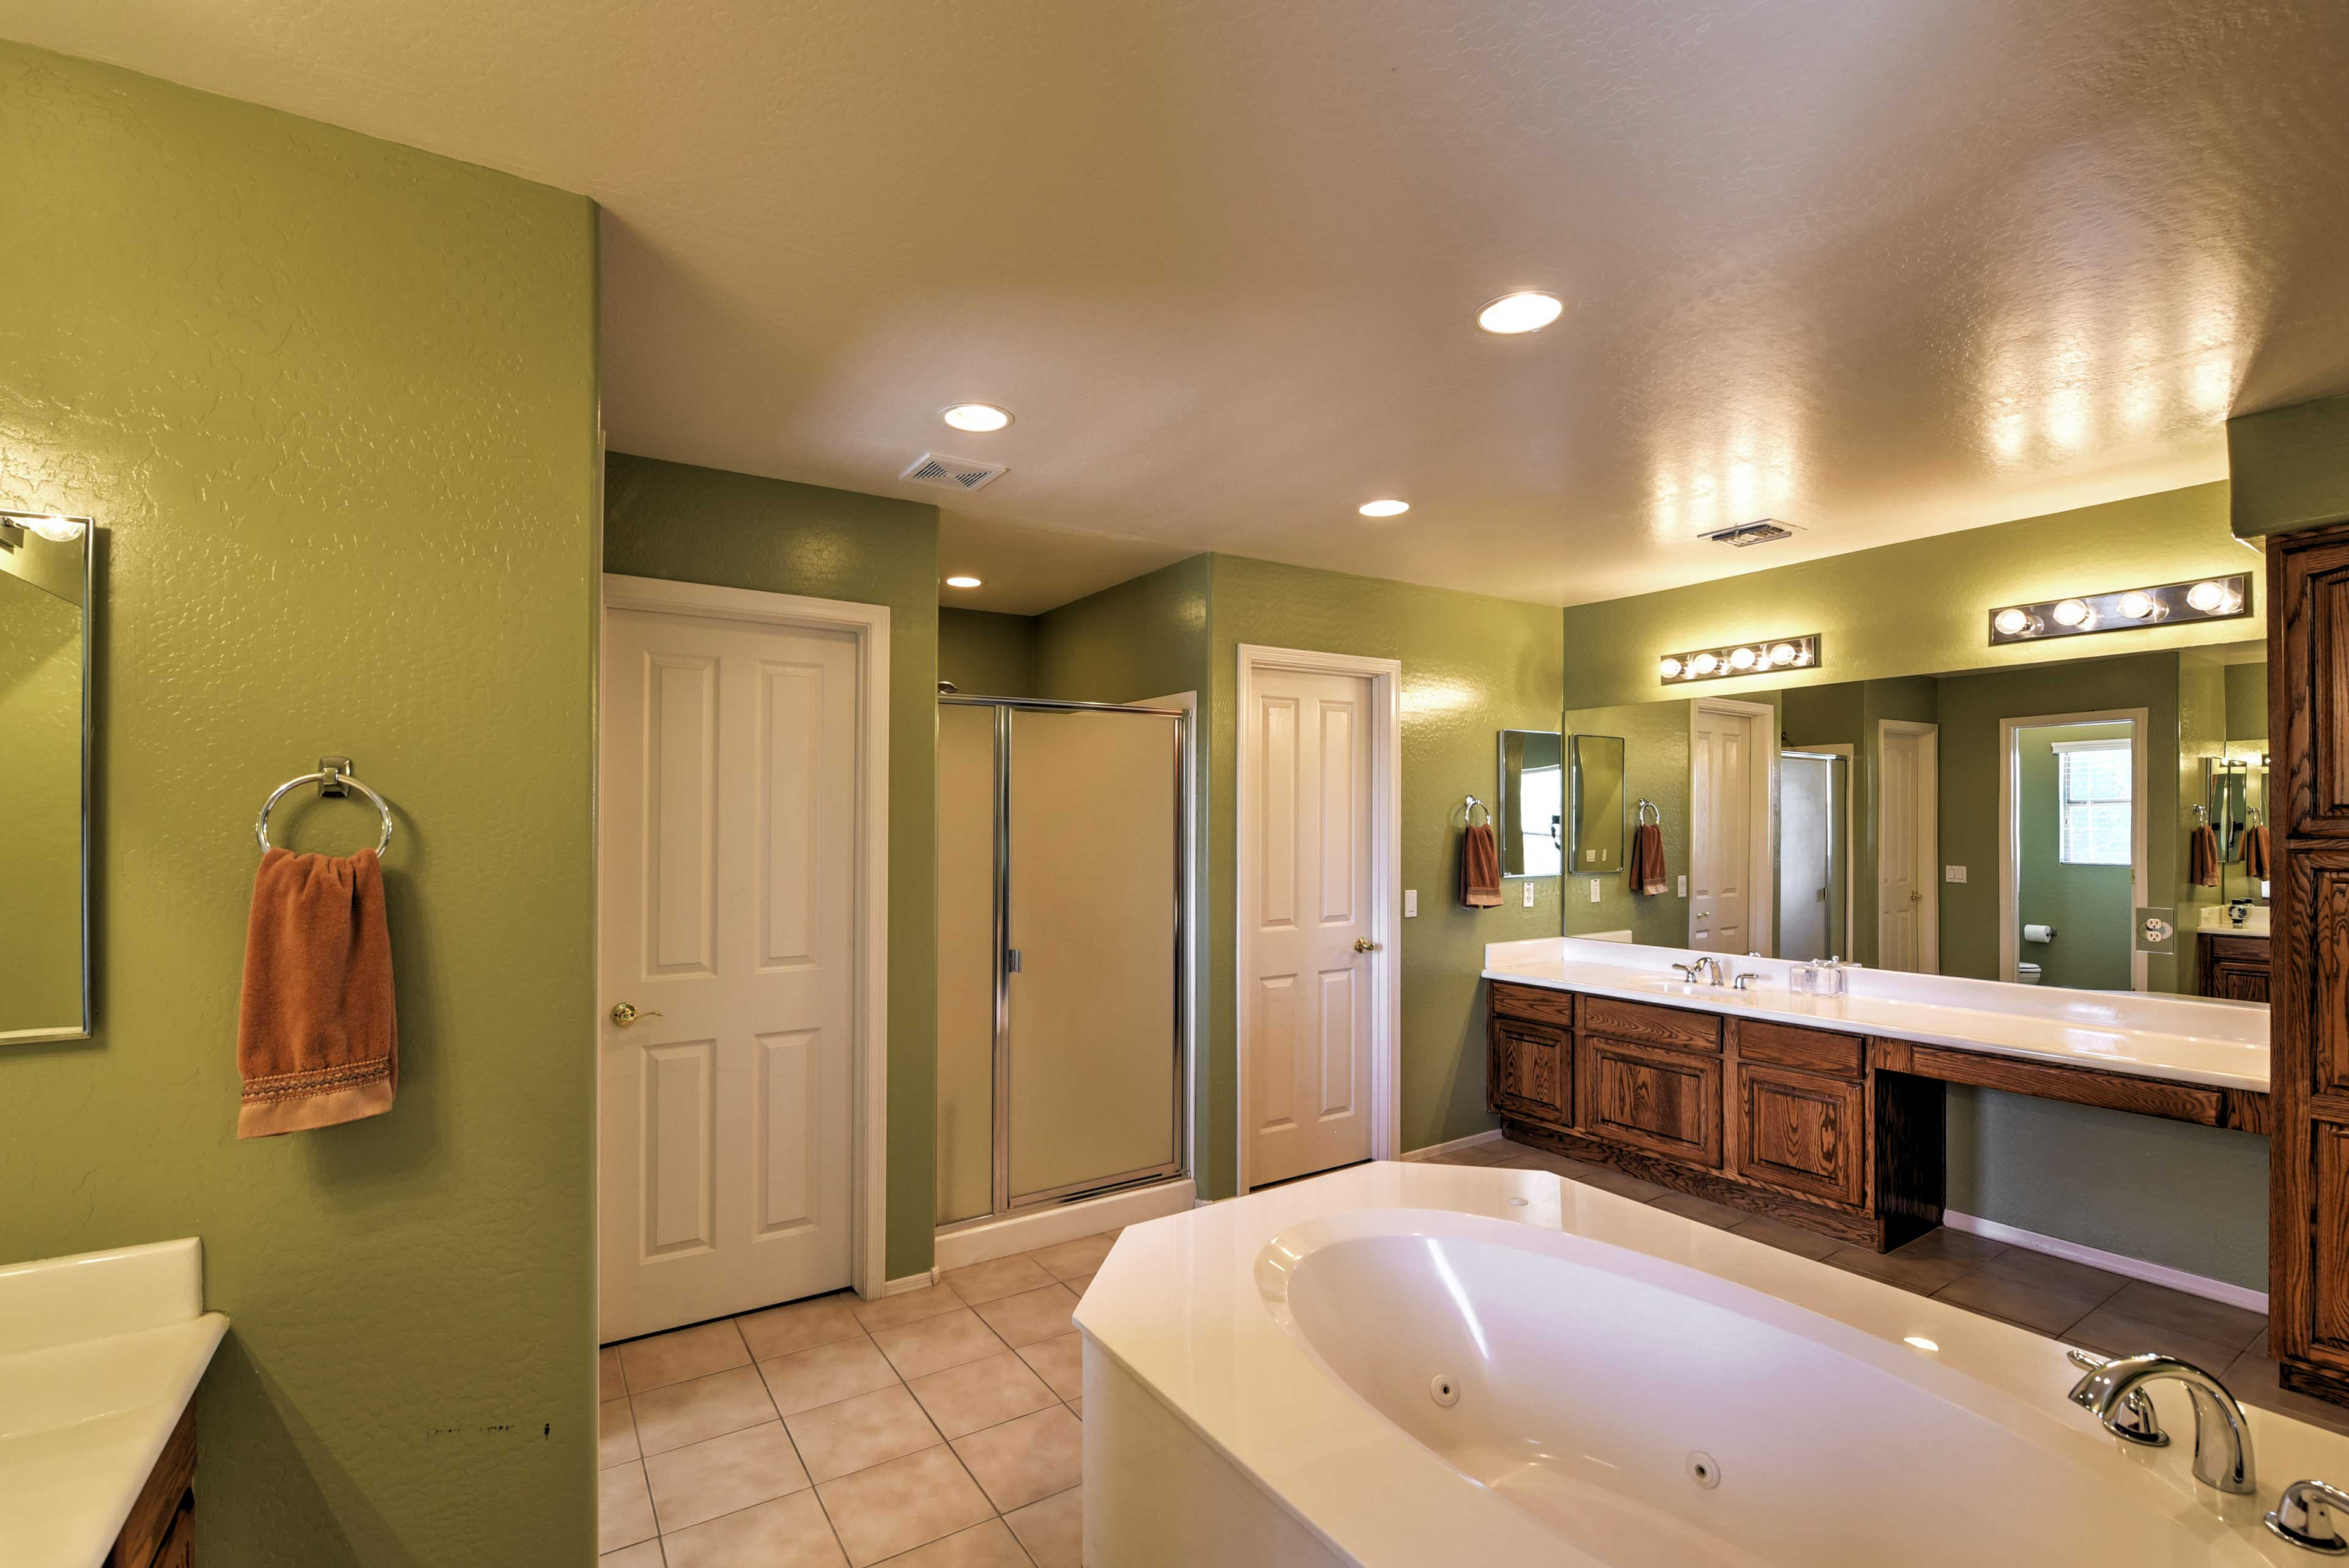 The master bedroom features a large en suite bathroom w/ tub & separate shower.